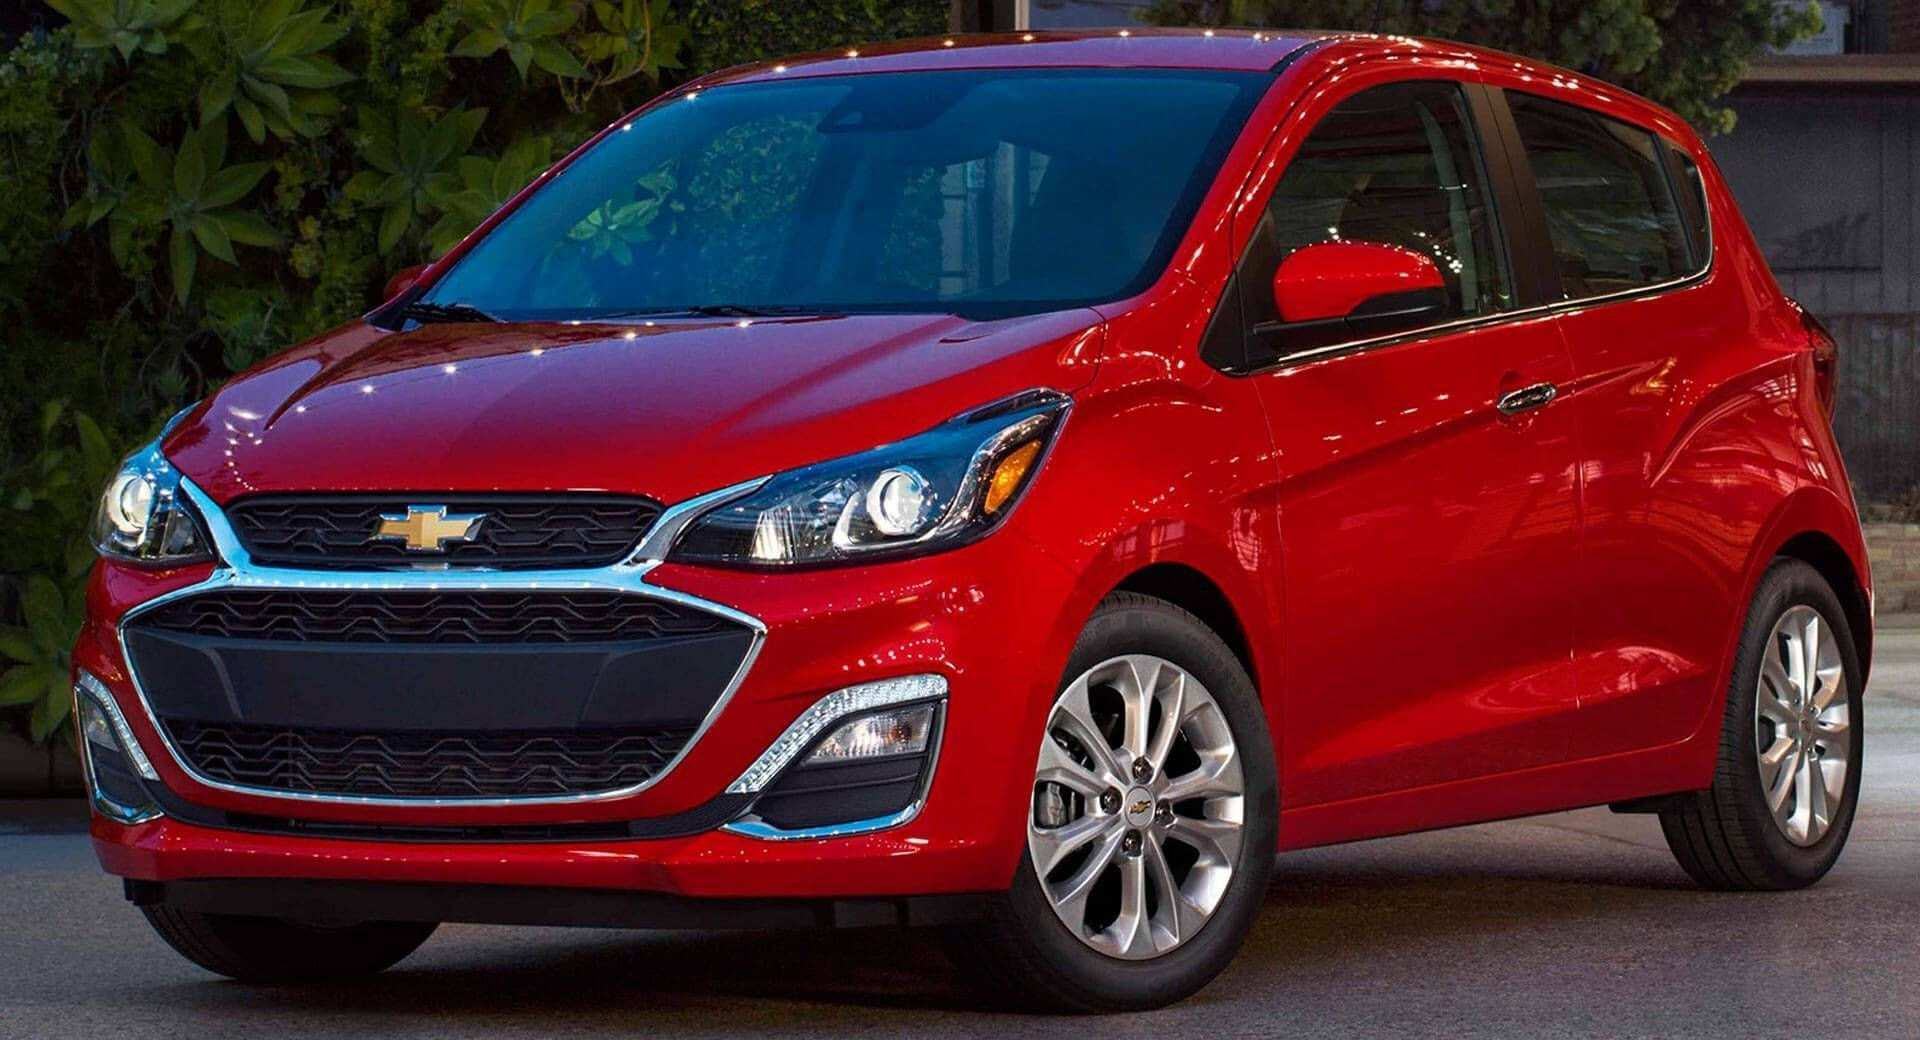 77 Great 2020 Chevrolet Spark Images by 2020 Chevrolet Spark